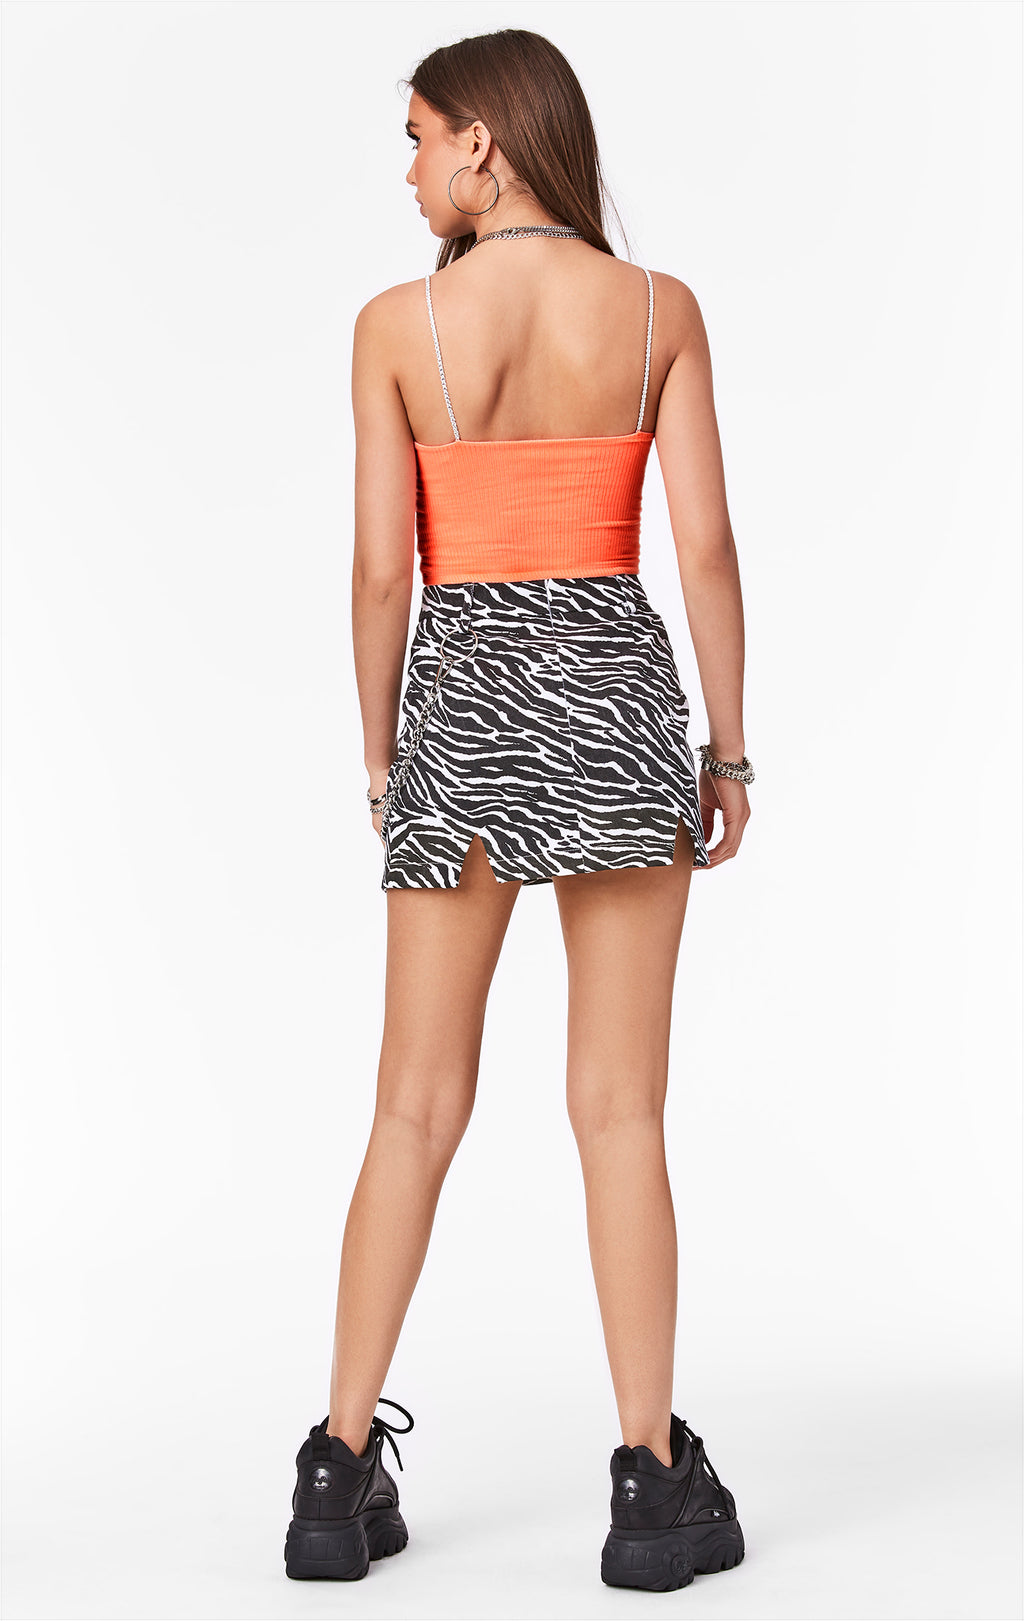 CARMAR DENIM ZEBRA PRINT SKIRT WITH CHAIN BACK